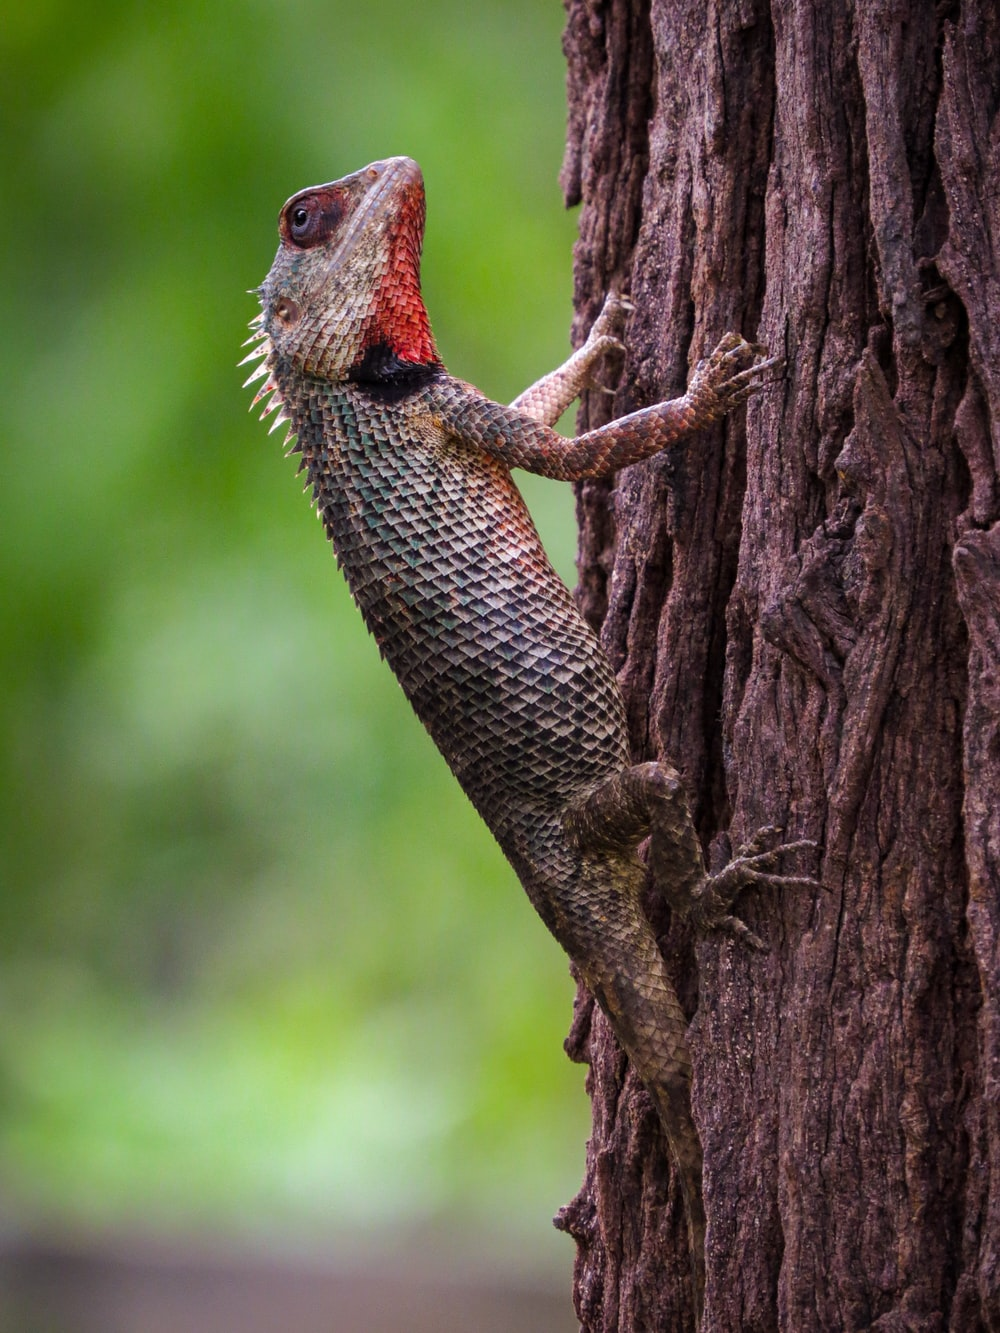 brown and black lizard on brown tree branch during daytime